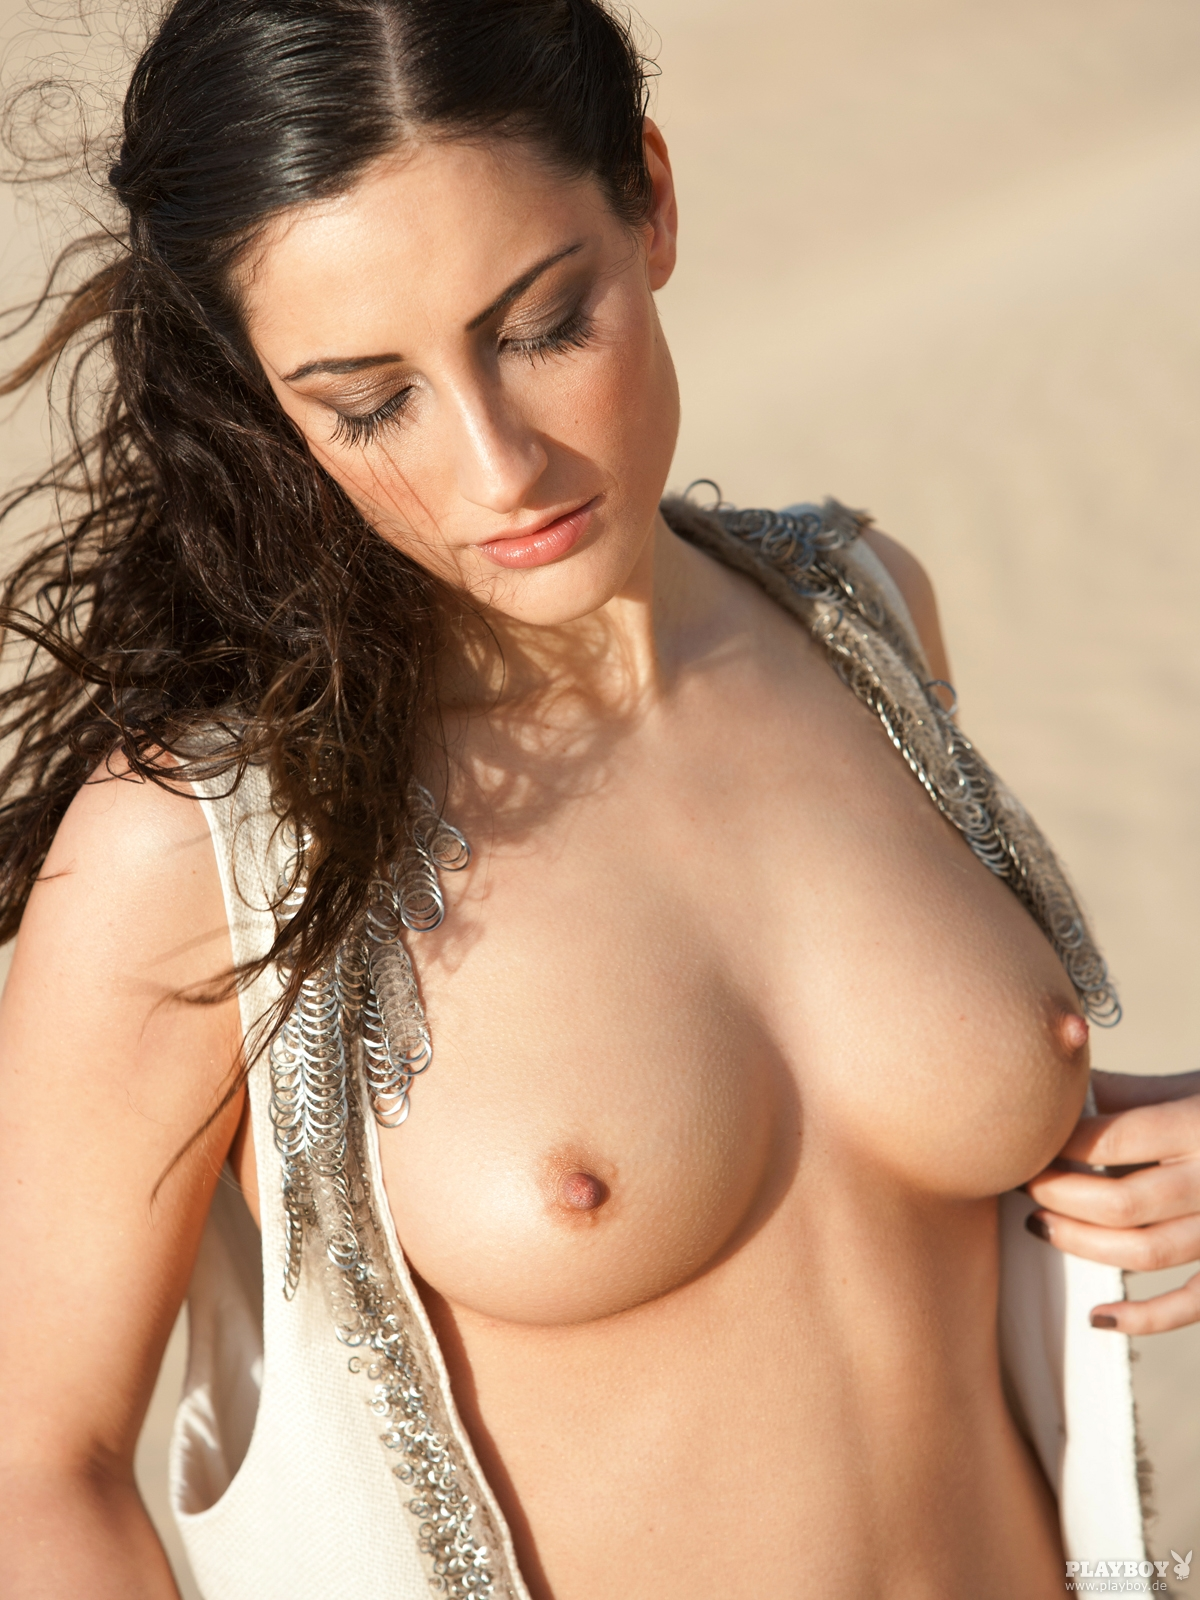 nude pics of turkish women